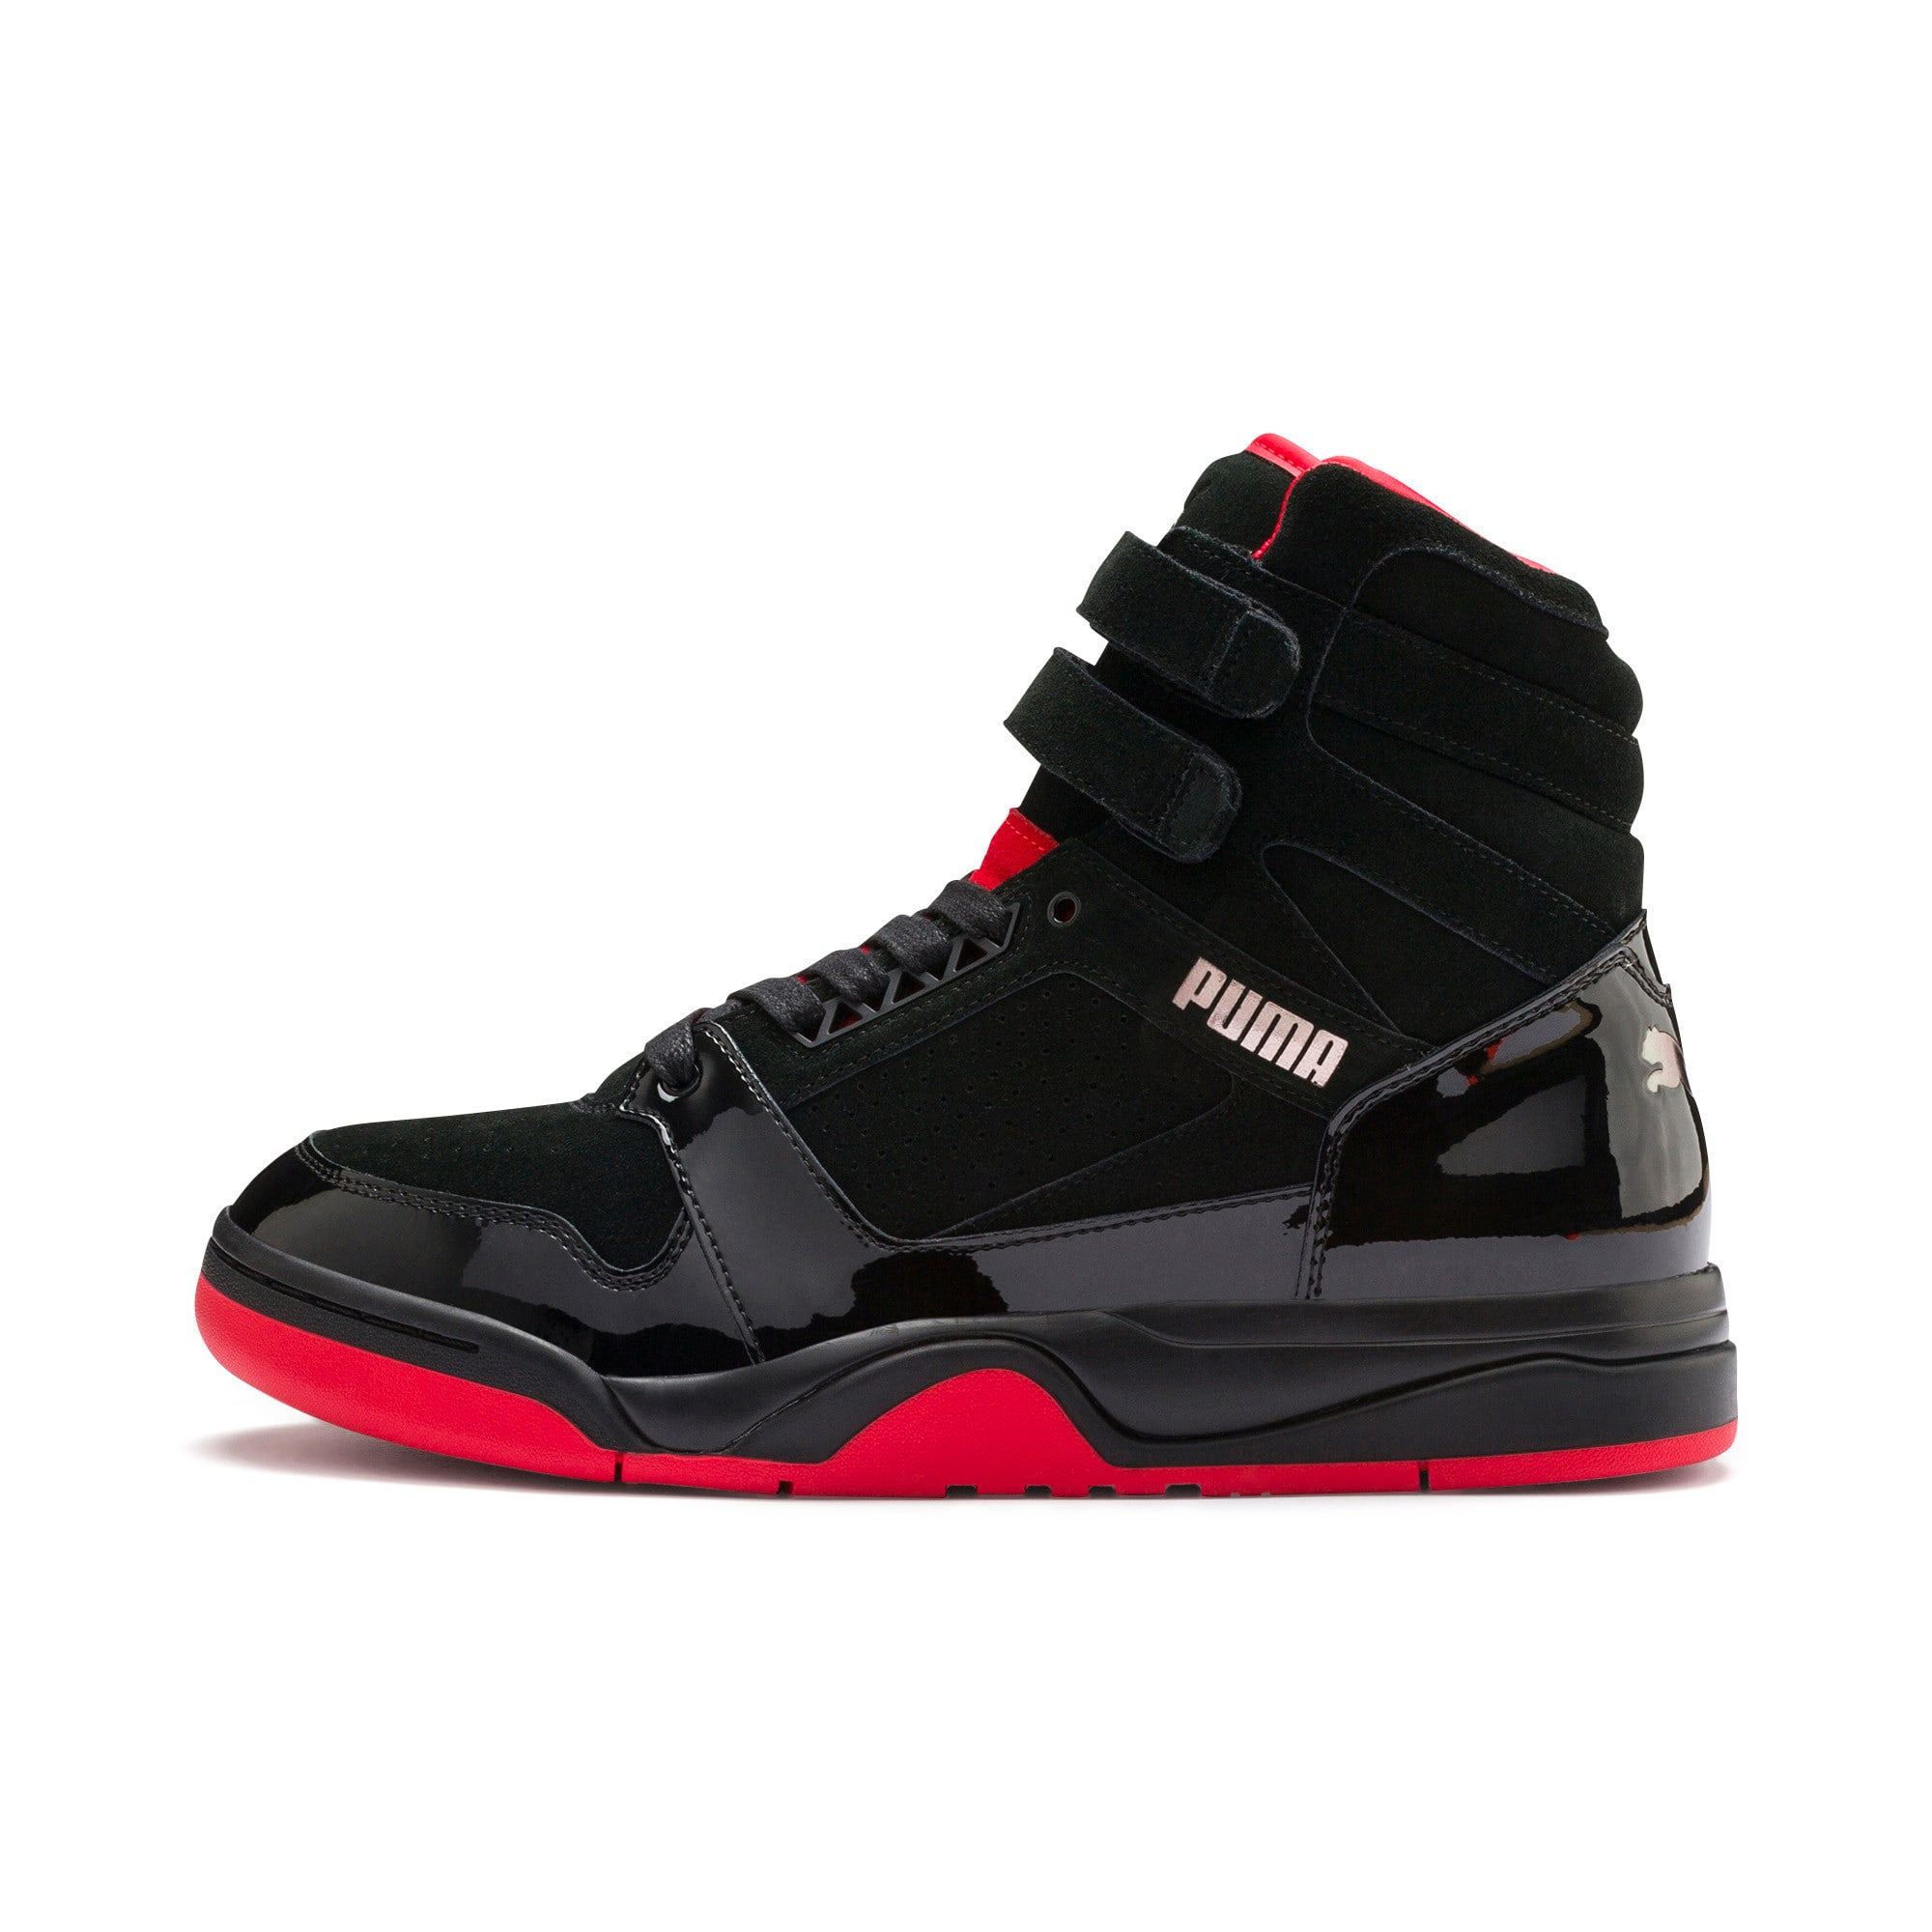 Thumbnail 1 of Palace Guard Red Carpet Mid-Cut Basketball Shoes, Puma Black-Risk Red-Bronze, medium-IND